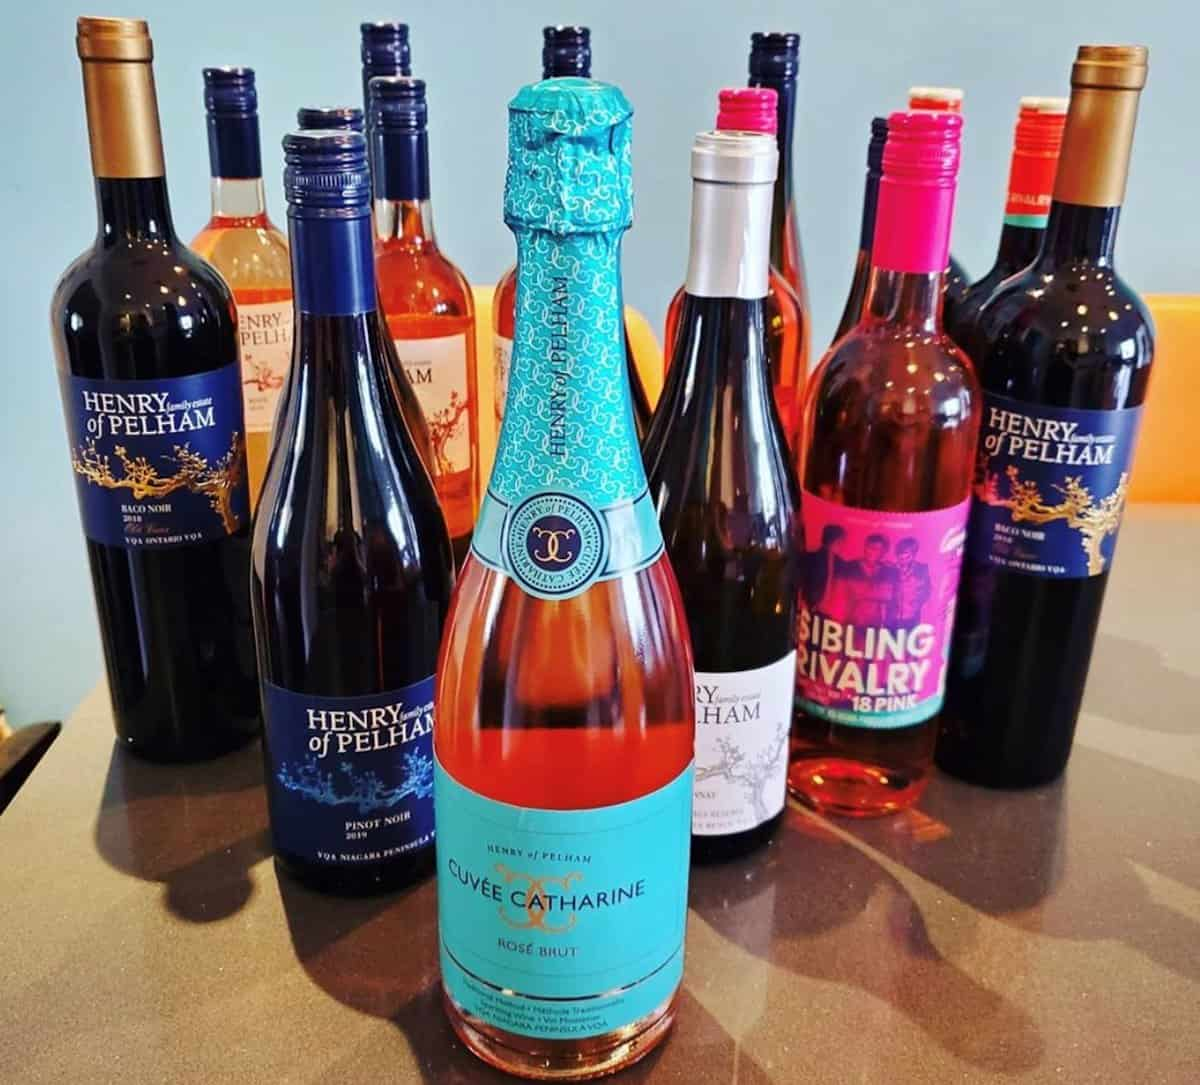 A collection of Henry of Pelham Wines.